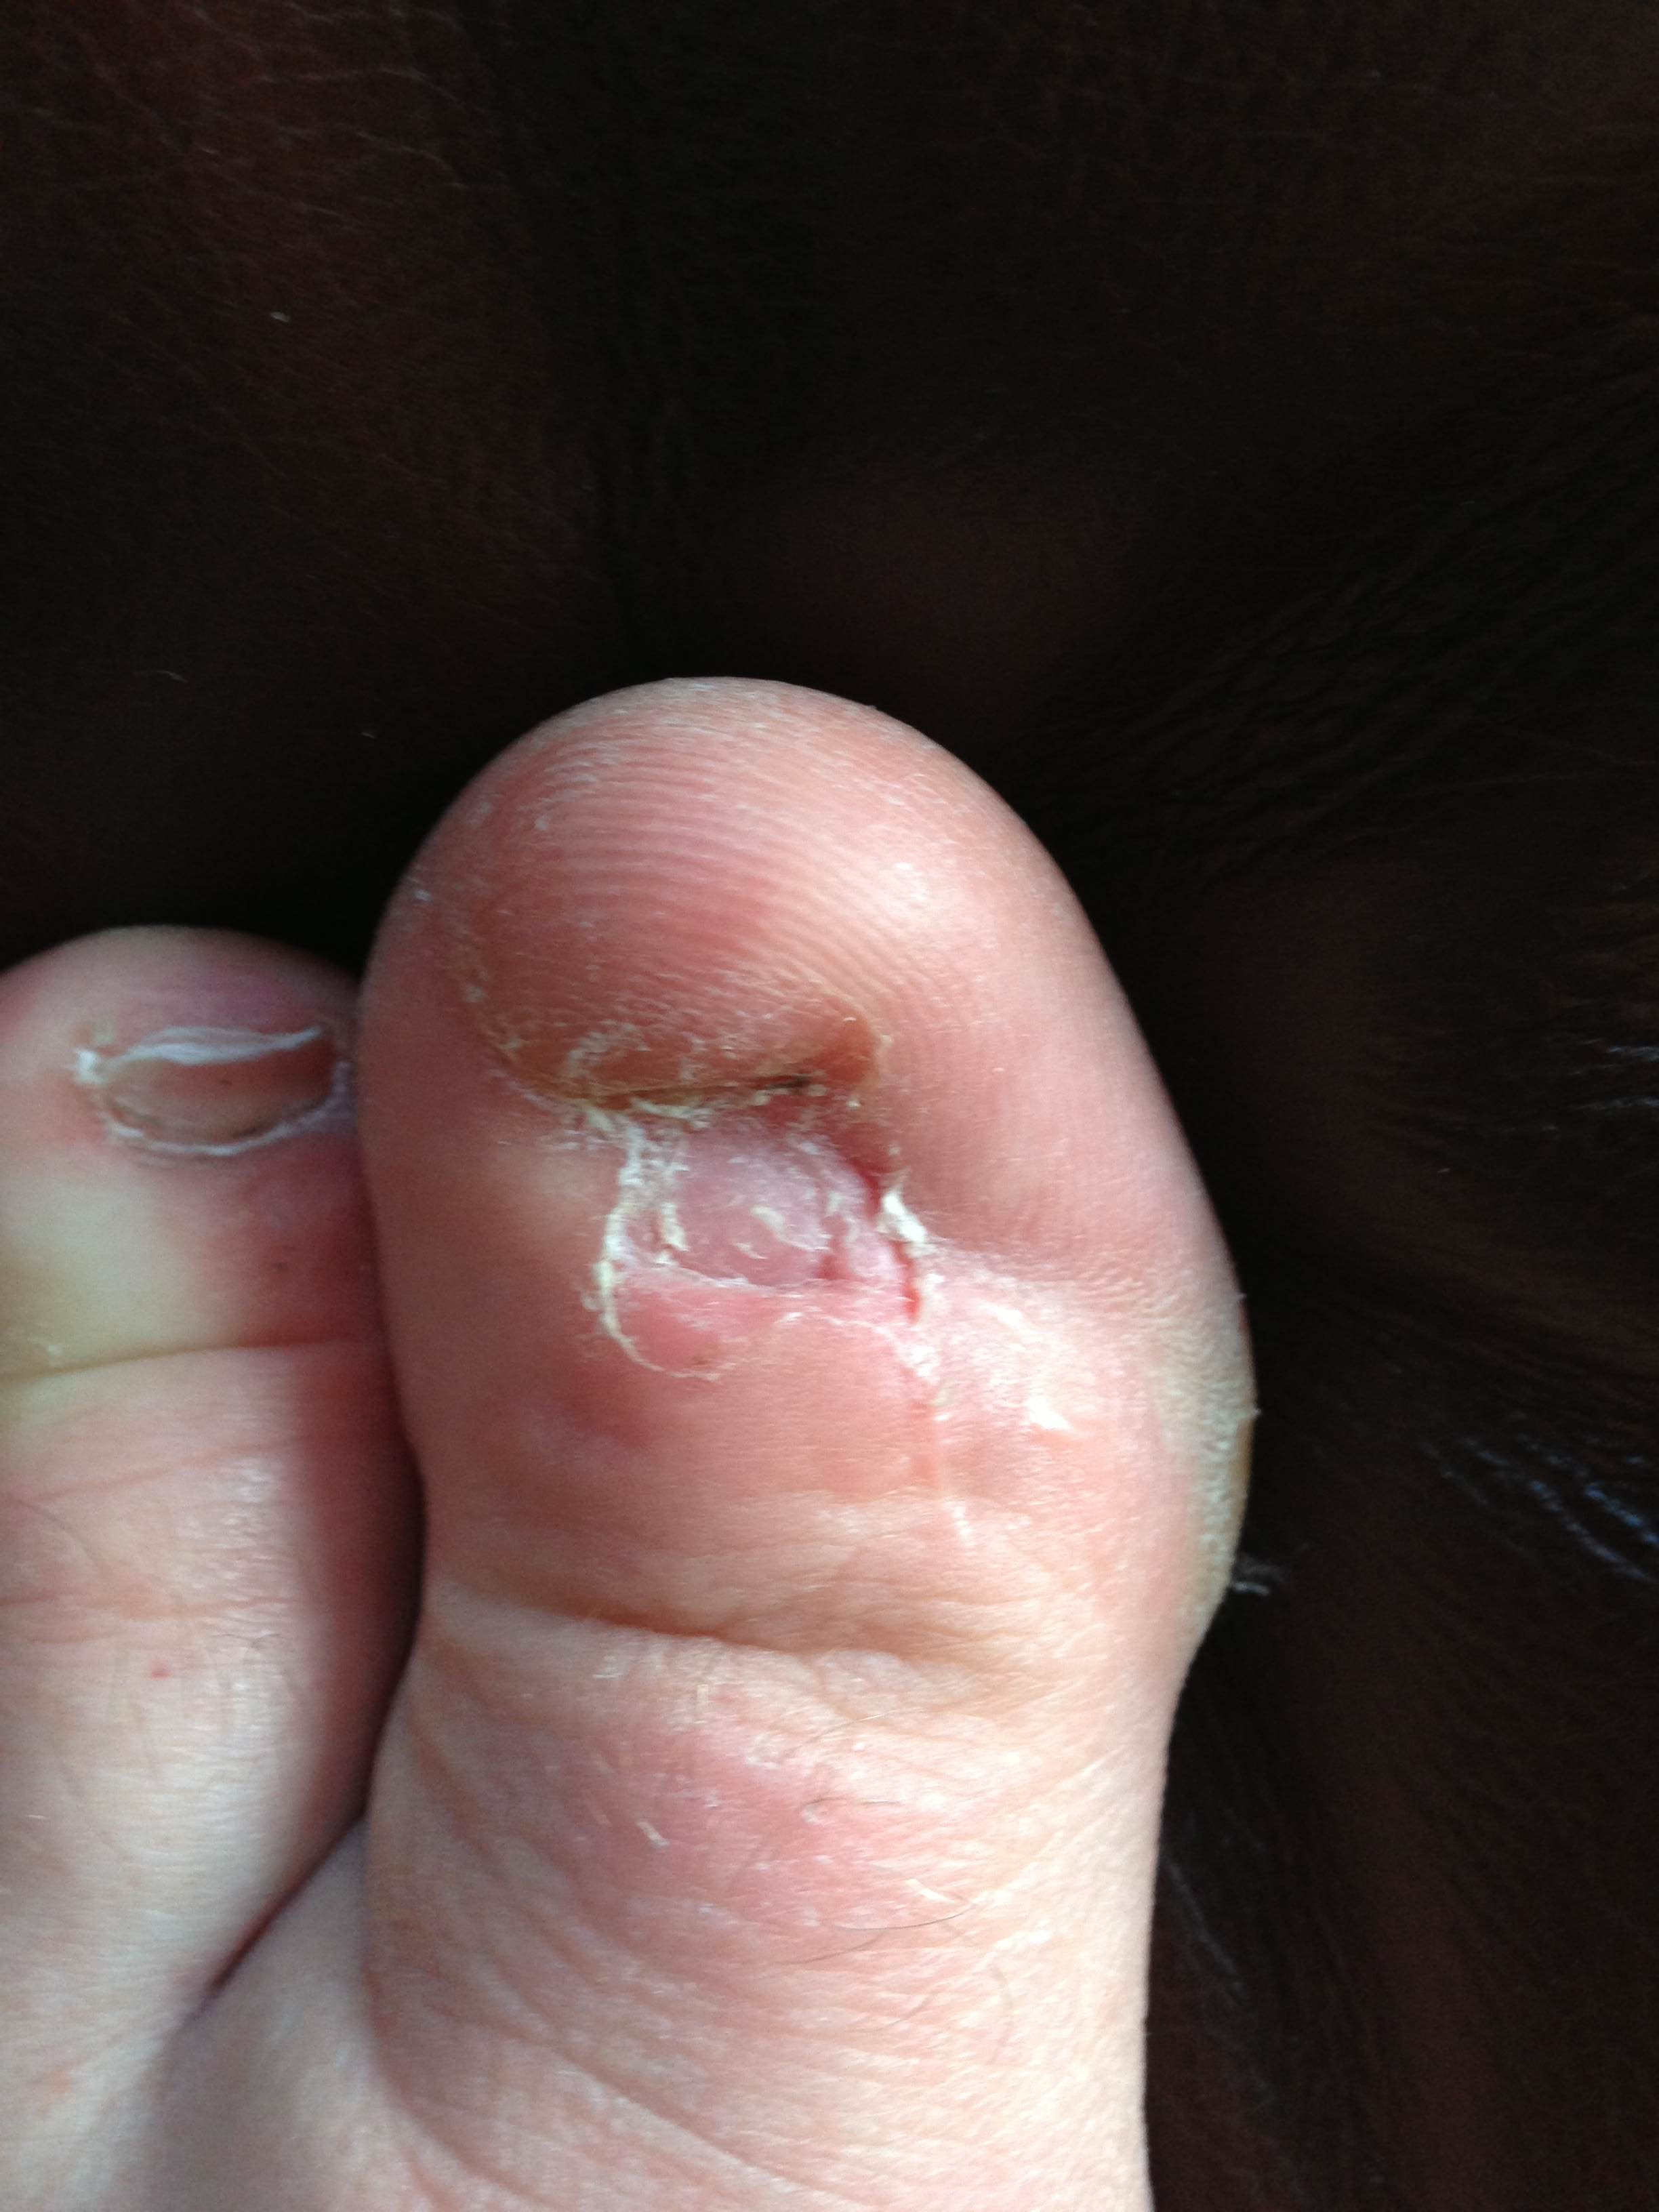 What it looks like to have no toe nails : WTF